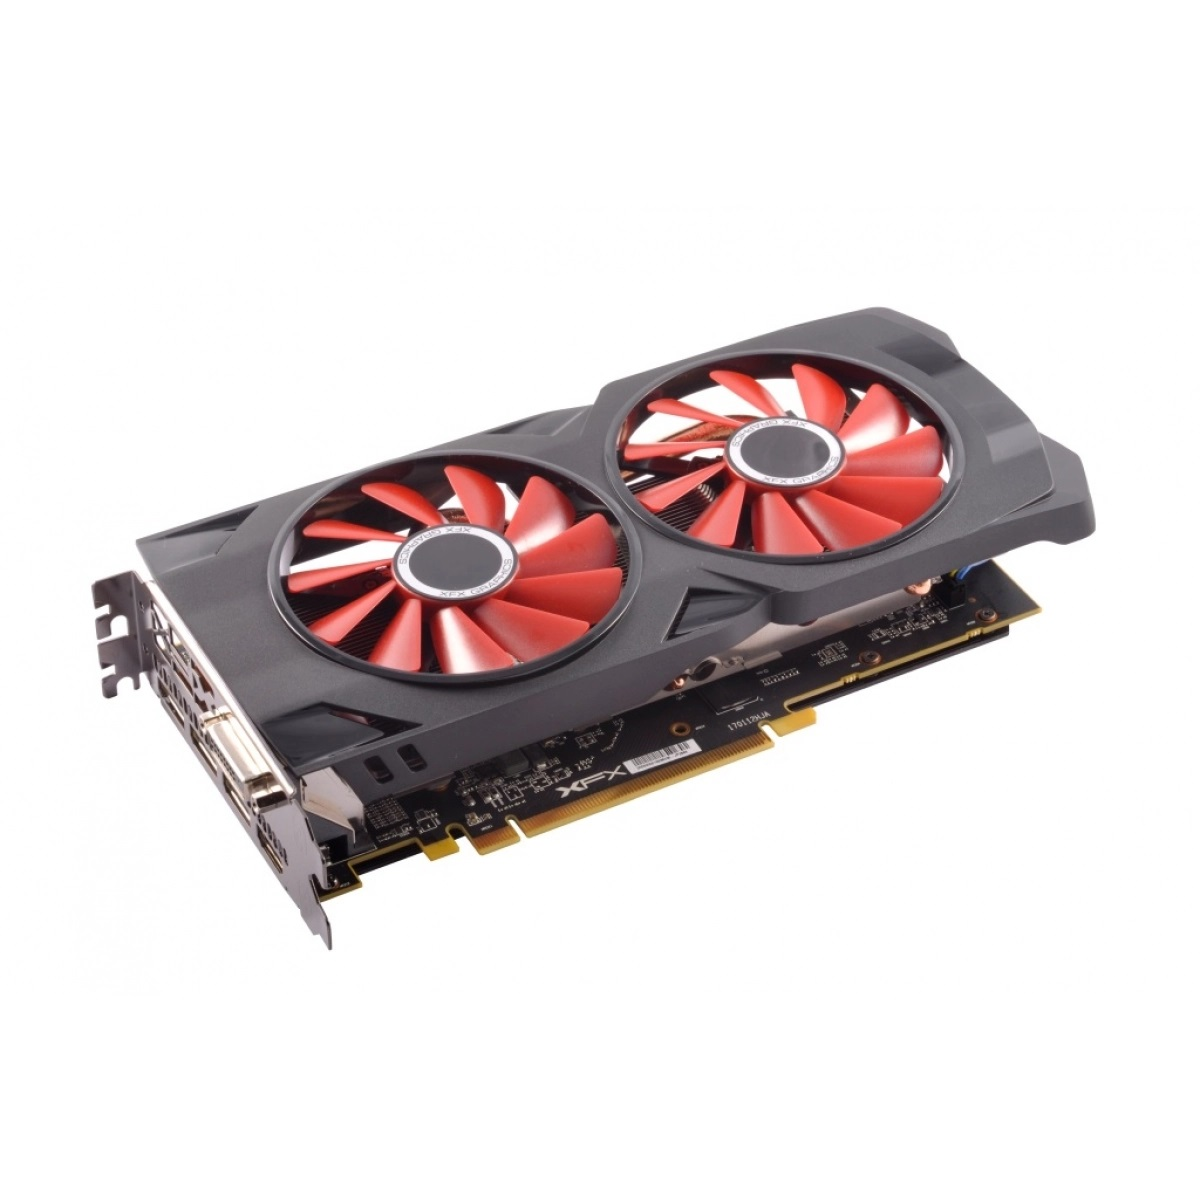 Placa De Video Rx 570 4 Gb 256 Bits 1284mhz Rs Xxx Ed Oc+ Ddr5 Xfx